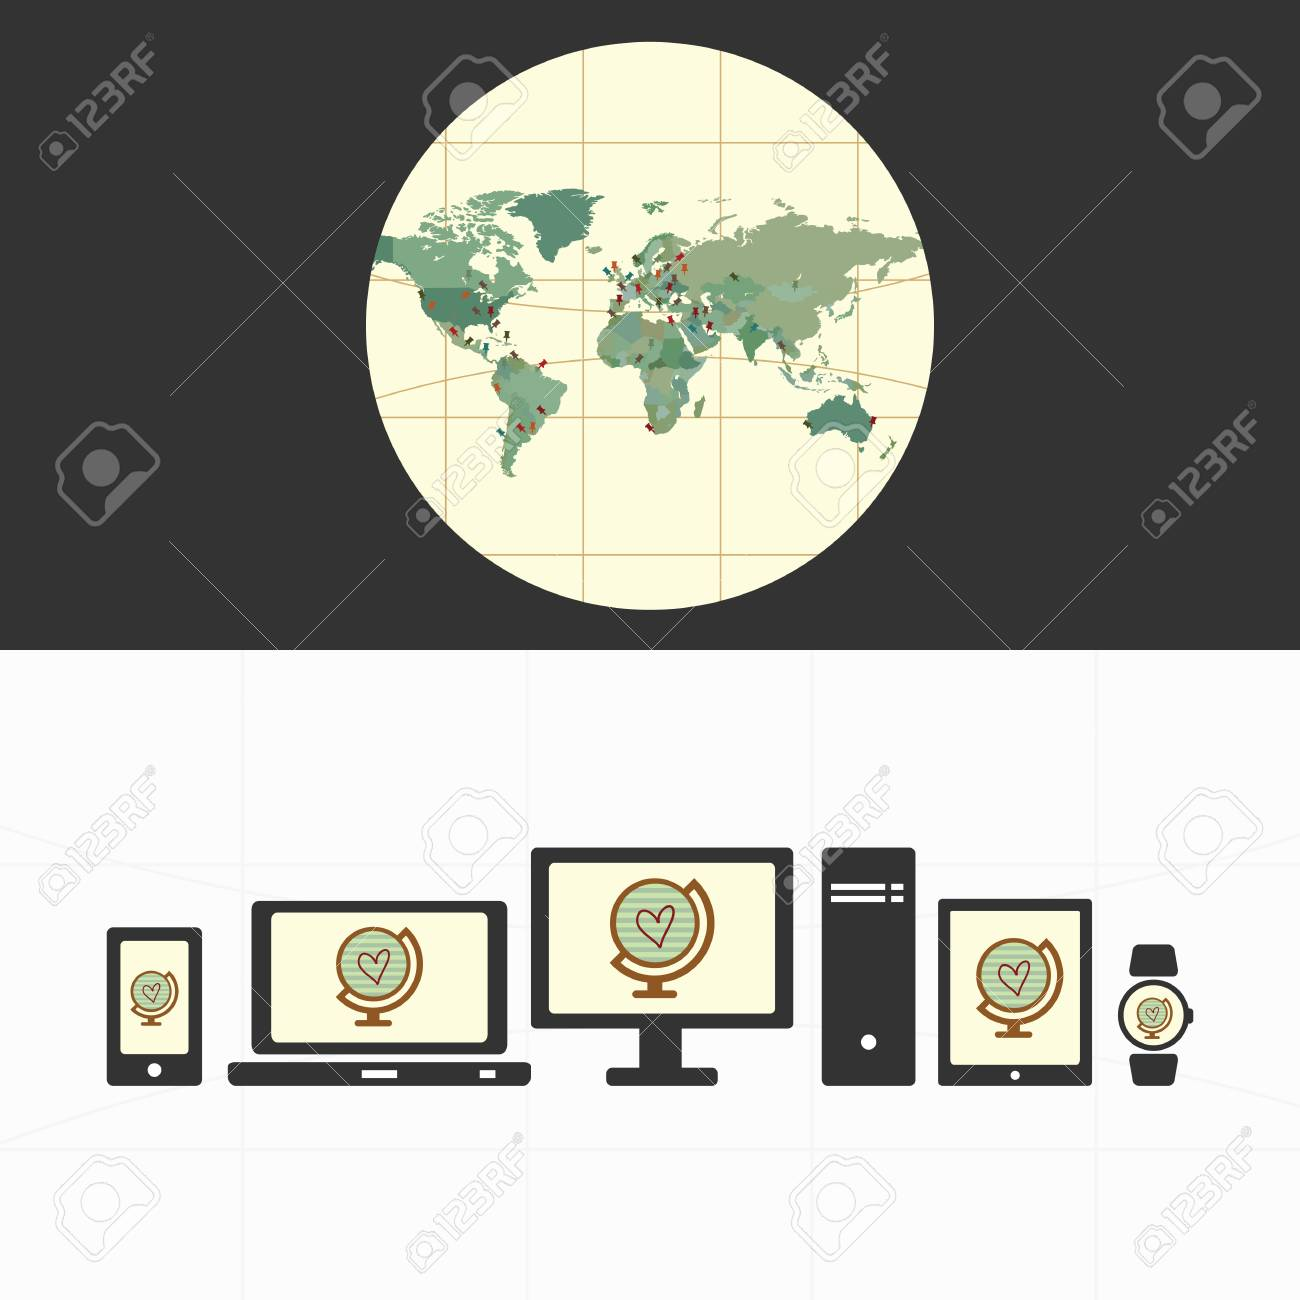 Travel Blog With Map Vector Illustration Banner Layout For Travel Blog Or Touristic